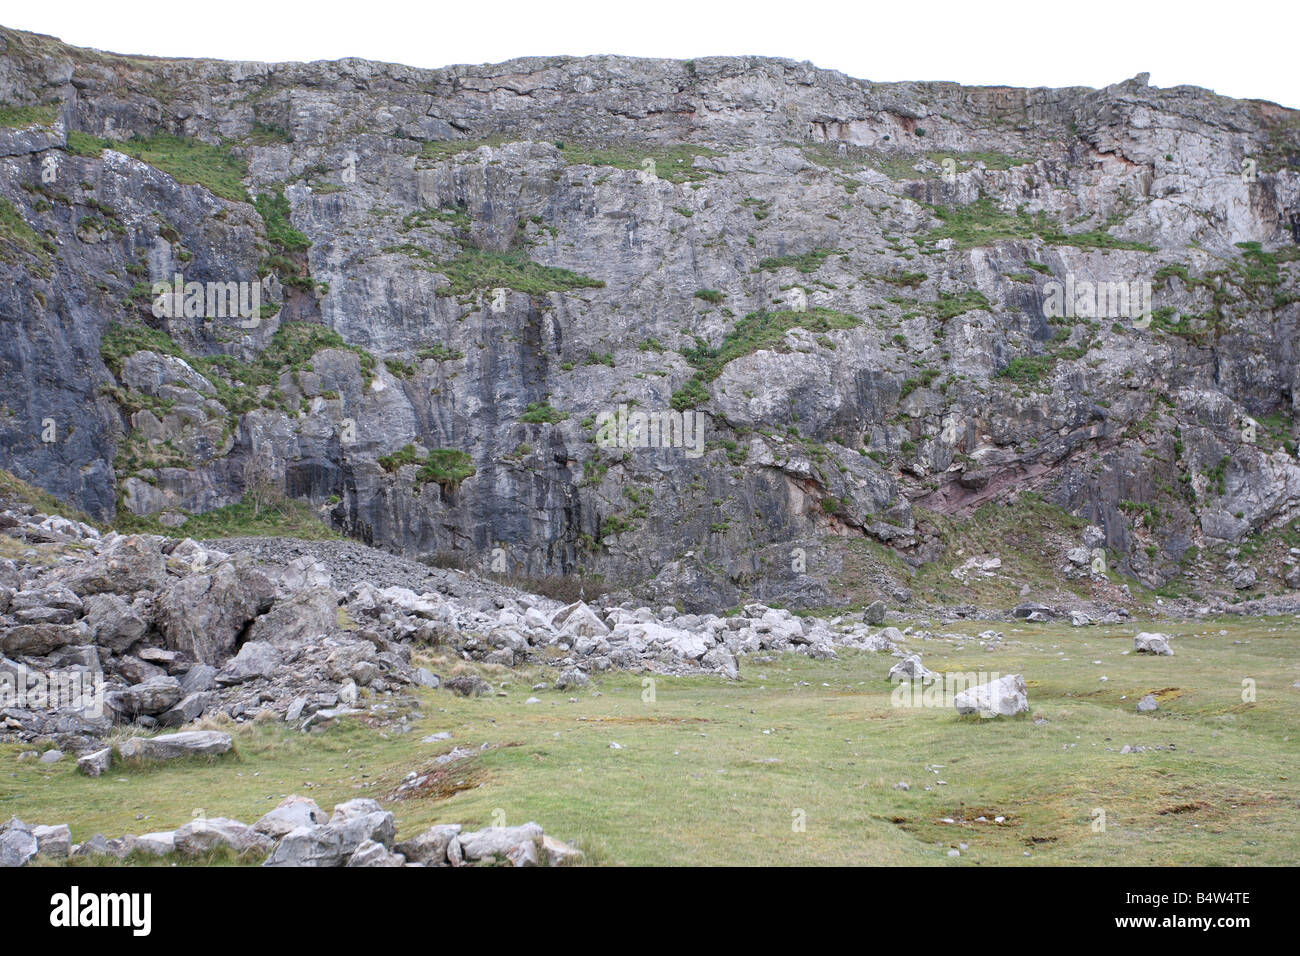 DISUSED LIMESTONE QUARRY NORTH WALES - Stock Image